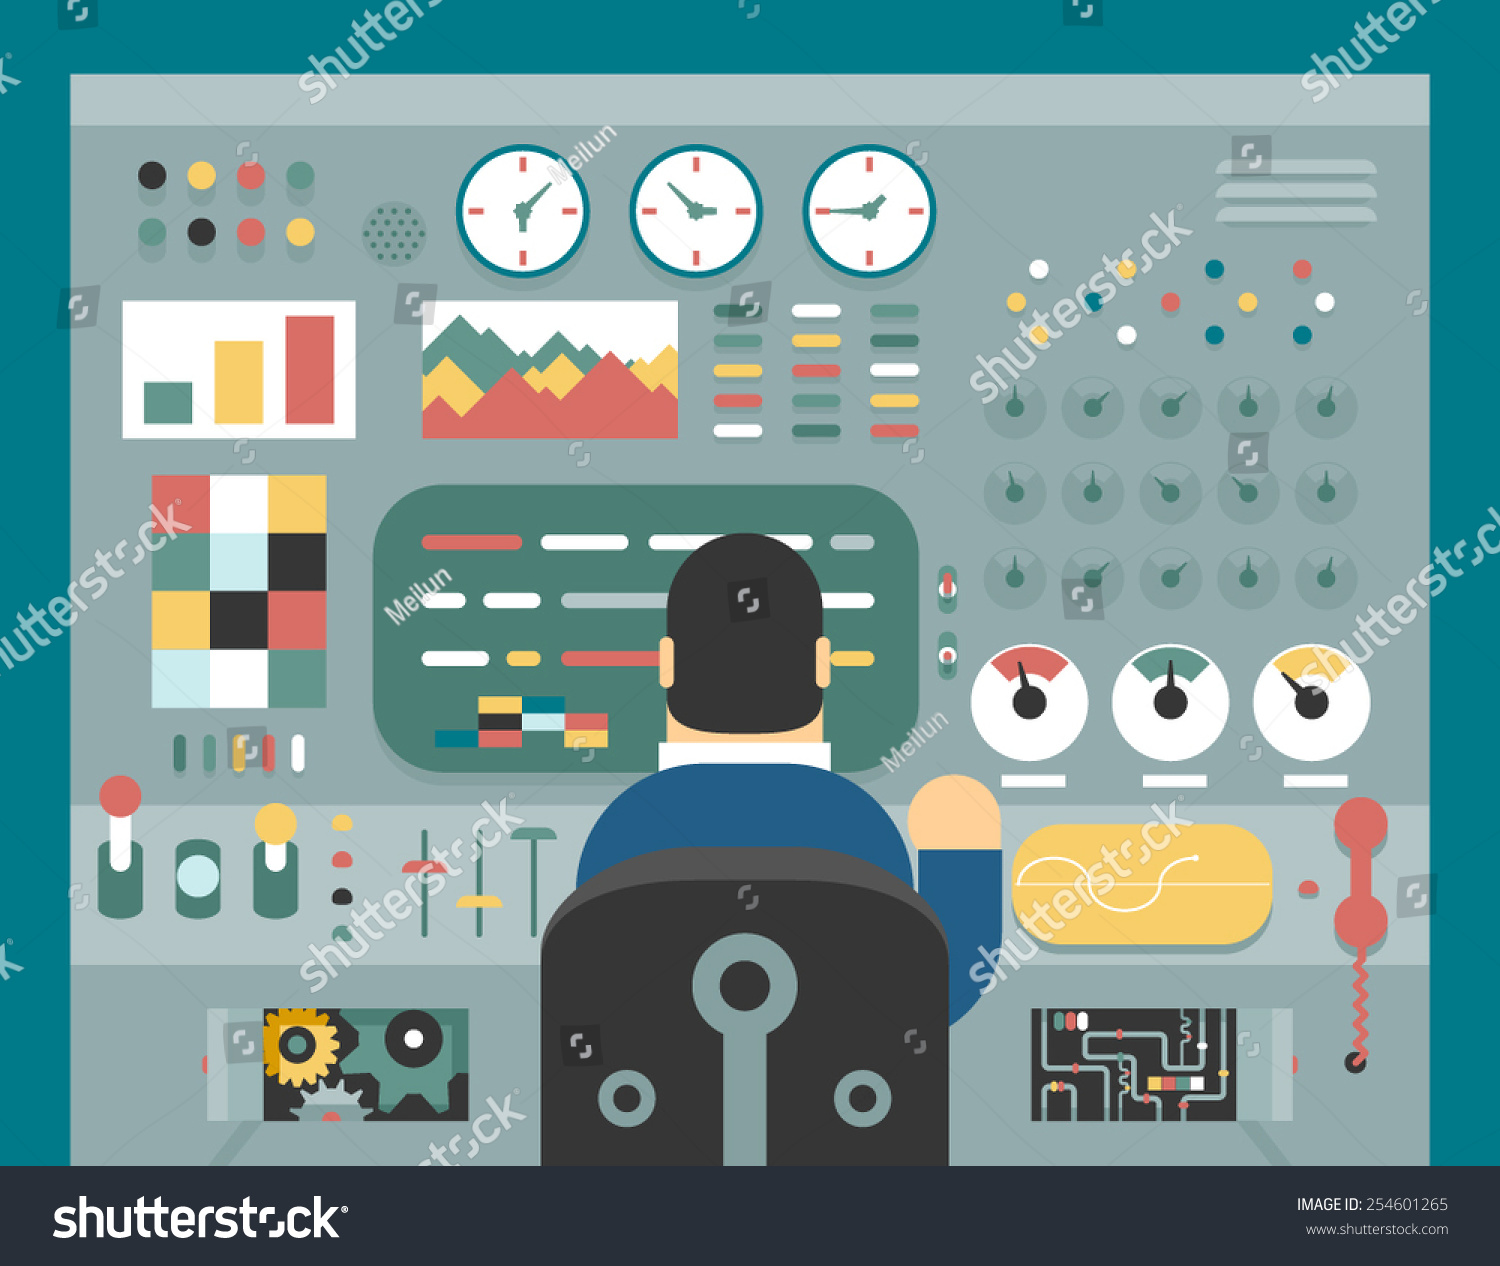 an analysis of work processing equipment or concept A brief description of the evolutionary process, from data collection to data analysis, with the concepts' context, surrogate and related terms, antecedents, attributes, examples and consequences, is presented.